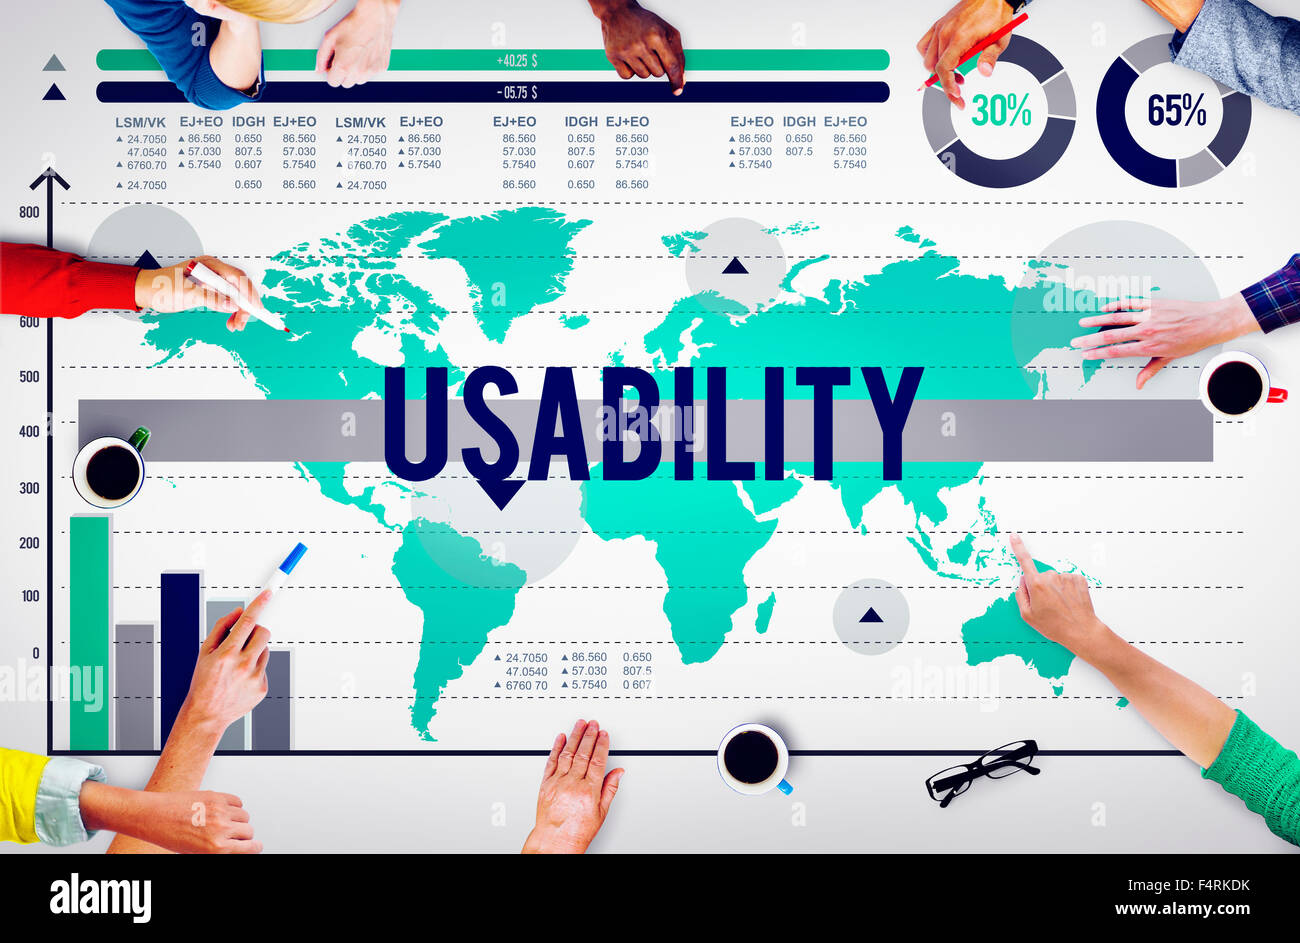 Usability Usefulness Quality Accessibility Efficiency Concept - Stock Image